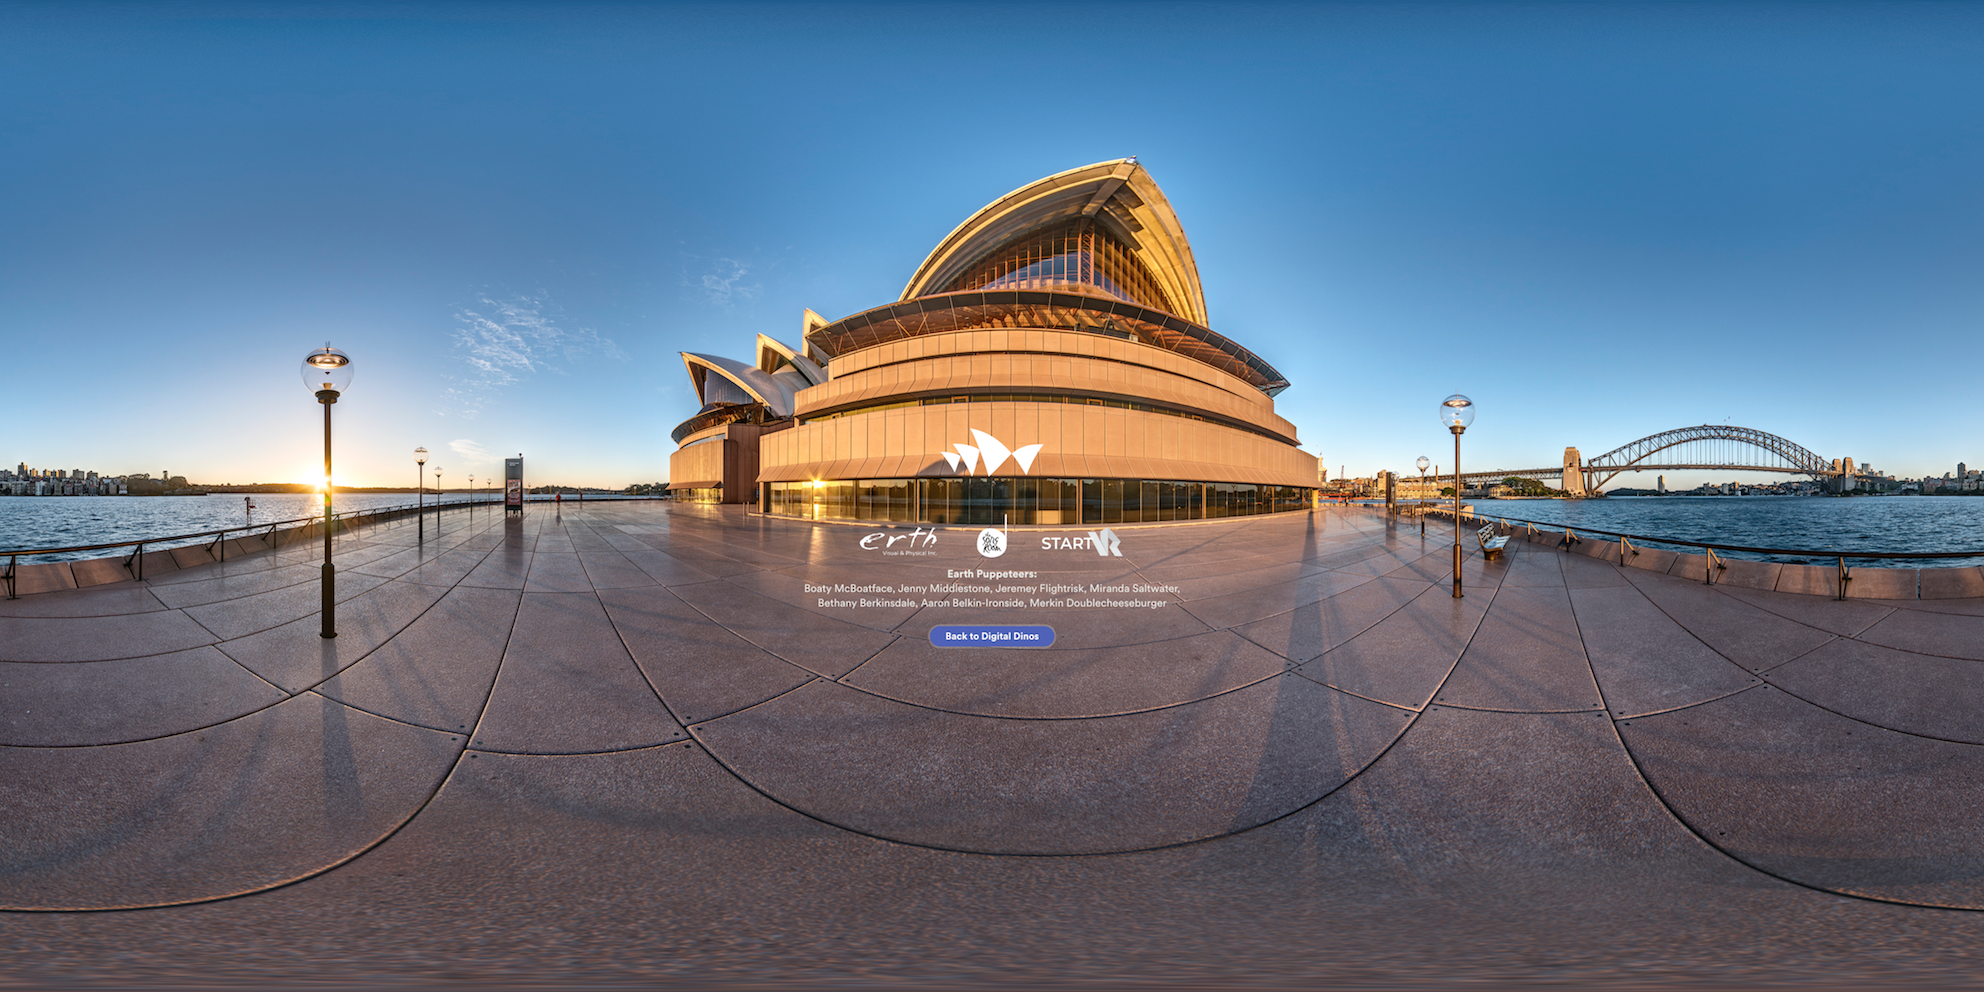 Digital Dinos credits screen by Sydney Opera House and Erth